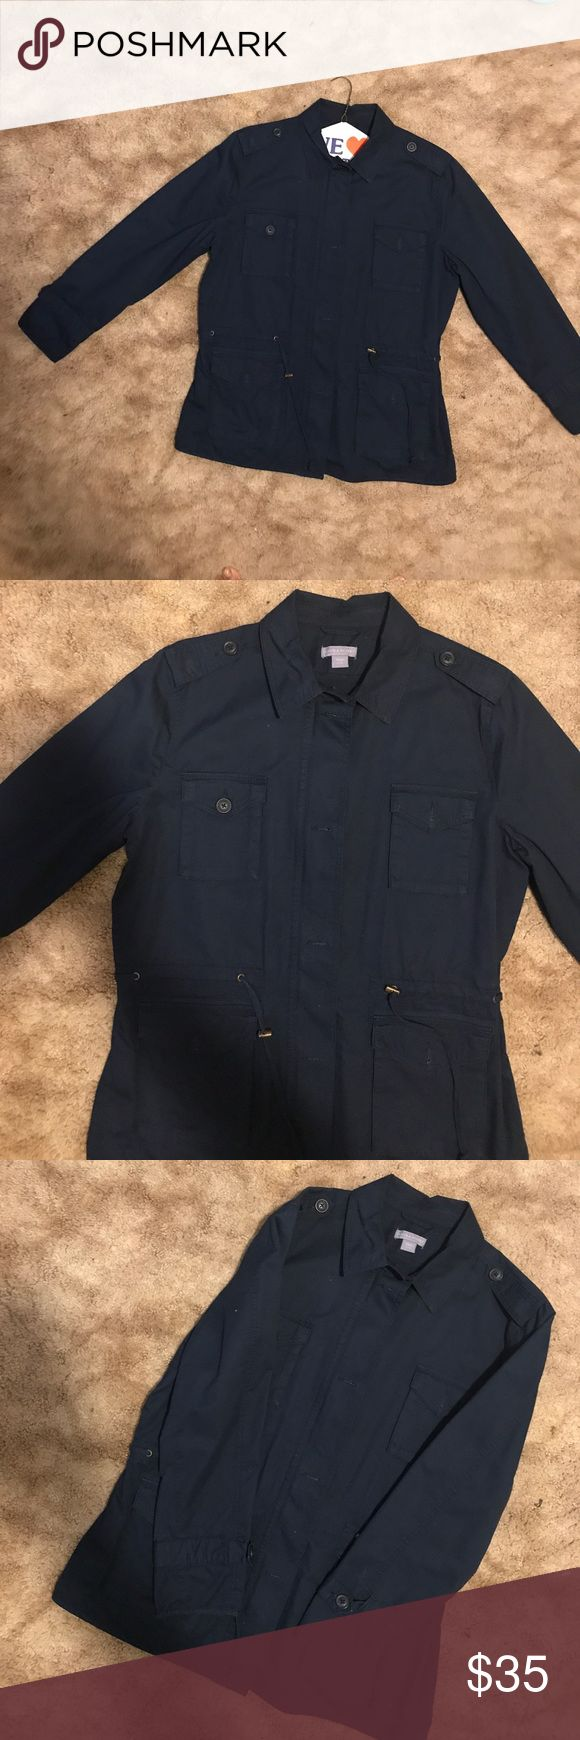 Spring /summer jacket FINAL SALE Jacket is in excellent condition comes from a smoke and pet free home Laura Scott Jackets & Coats Utility Jackets